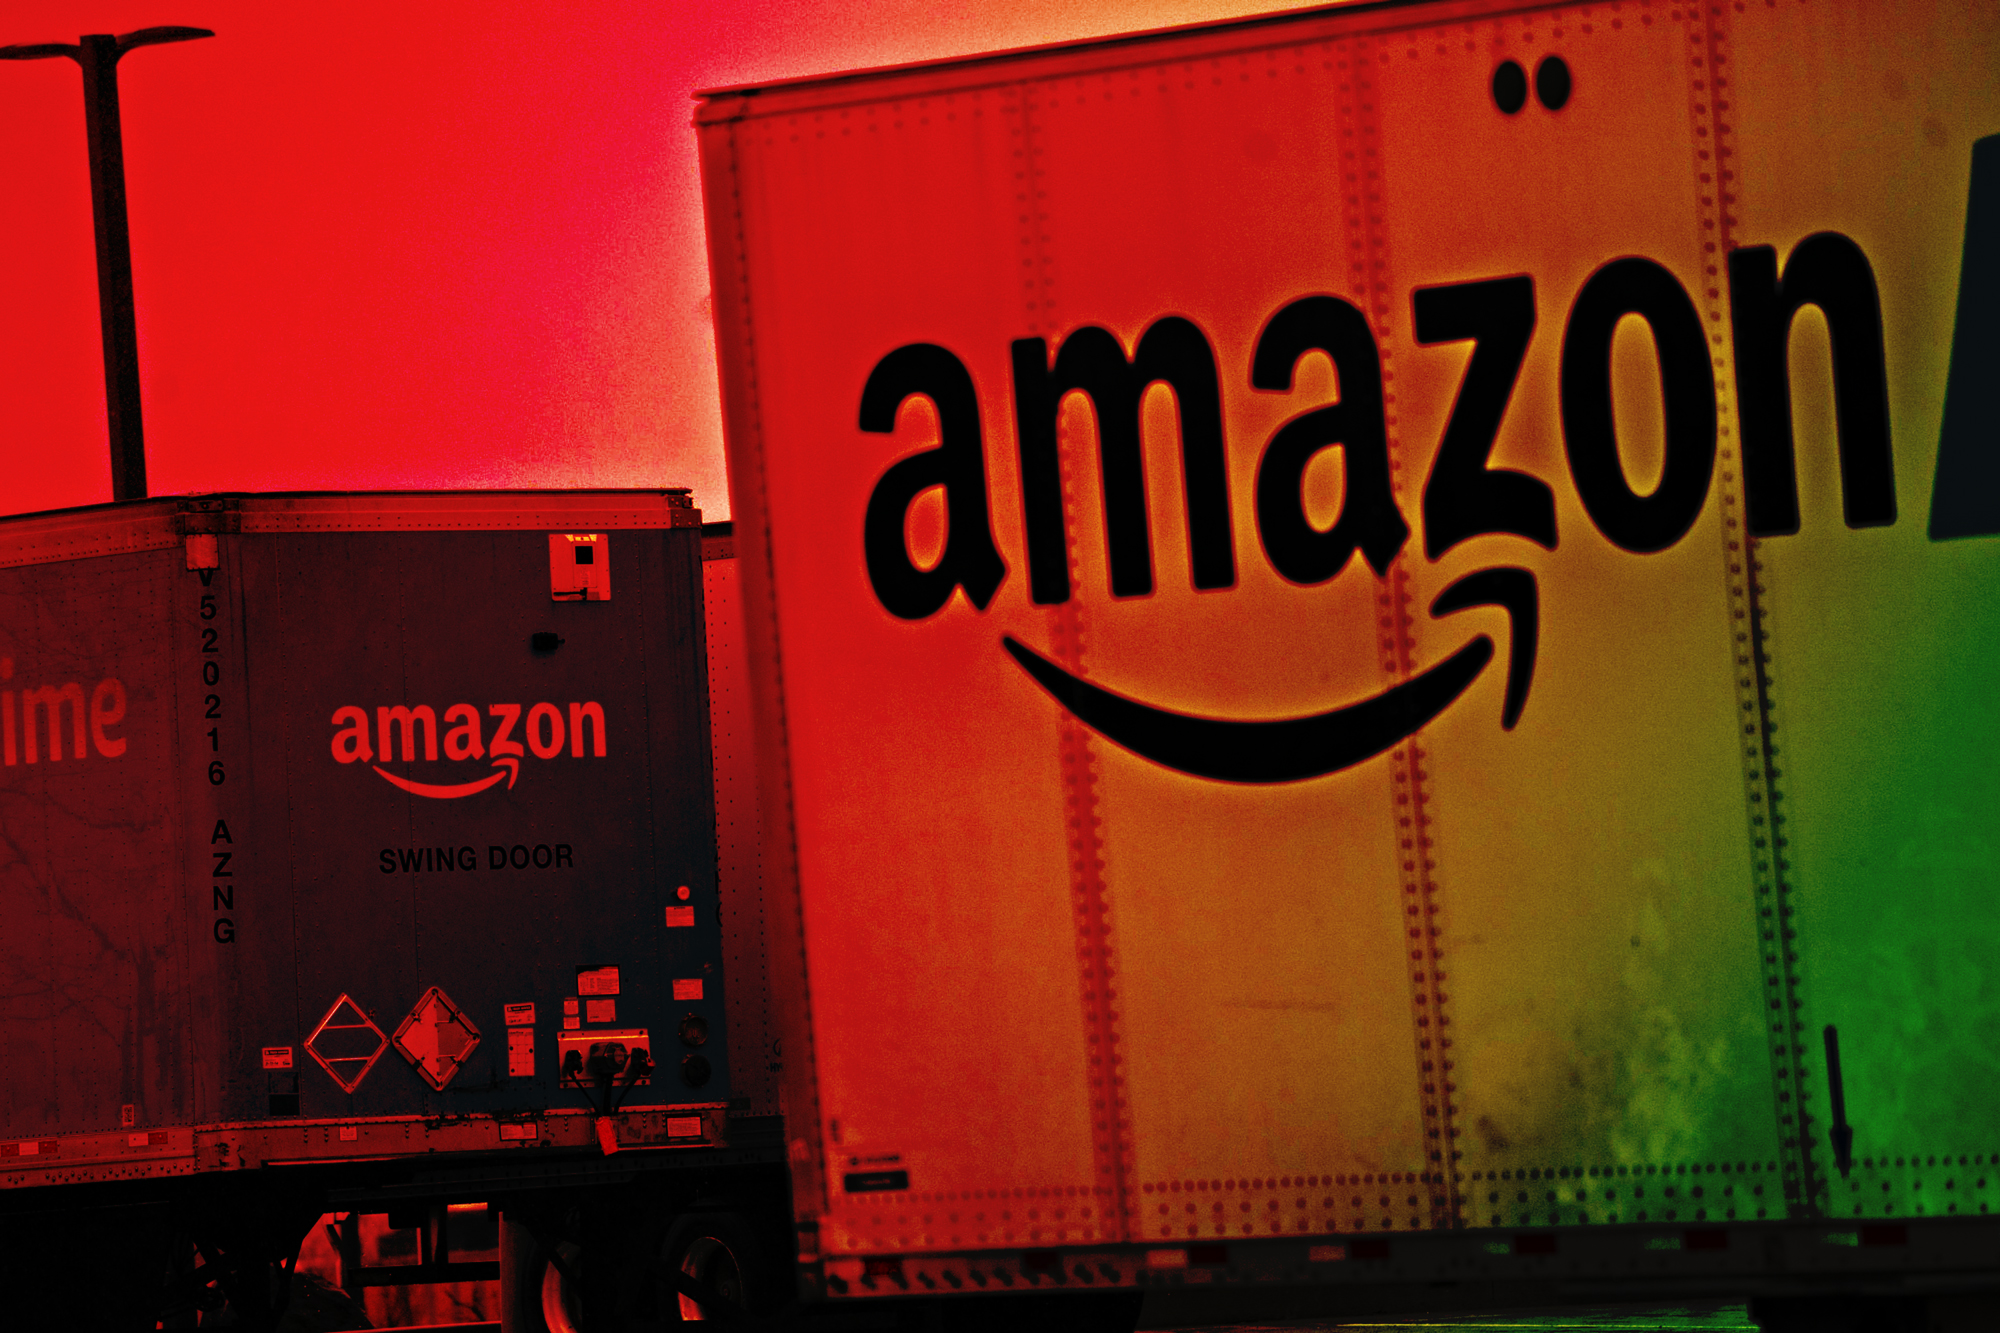 Amazon surprisingly lags competitors like Walmart and Target in e-commerce surge